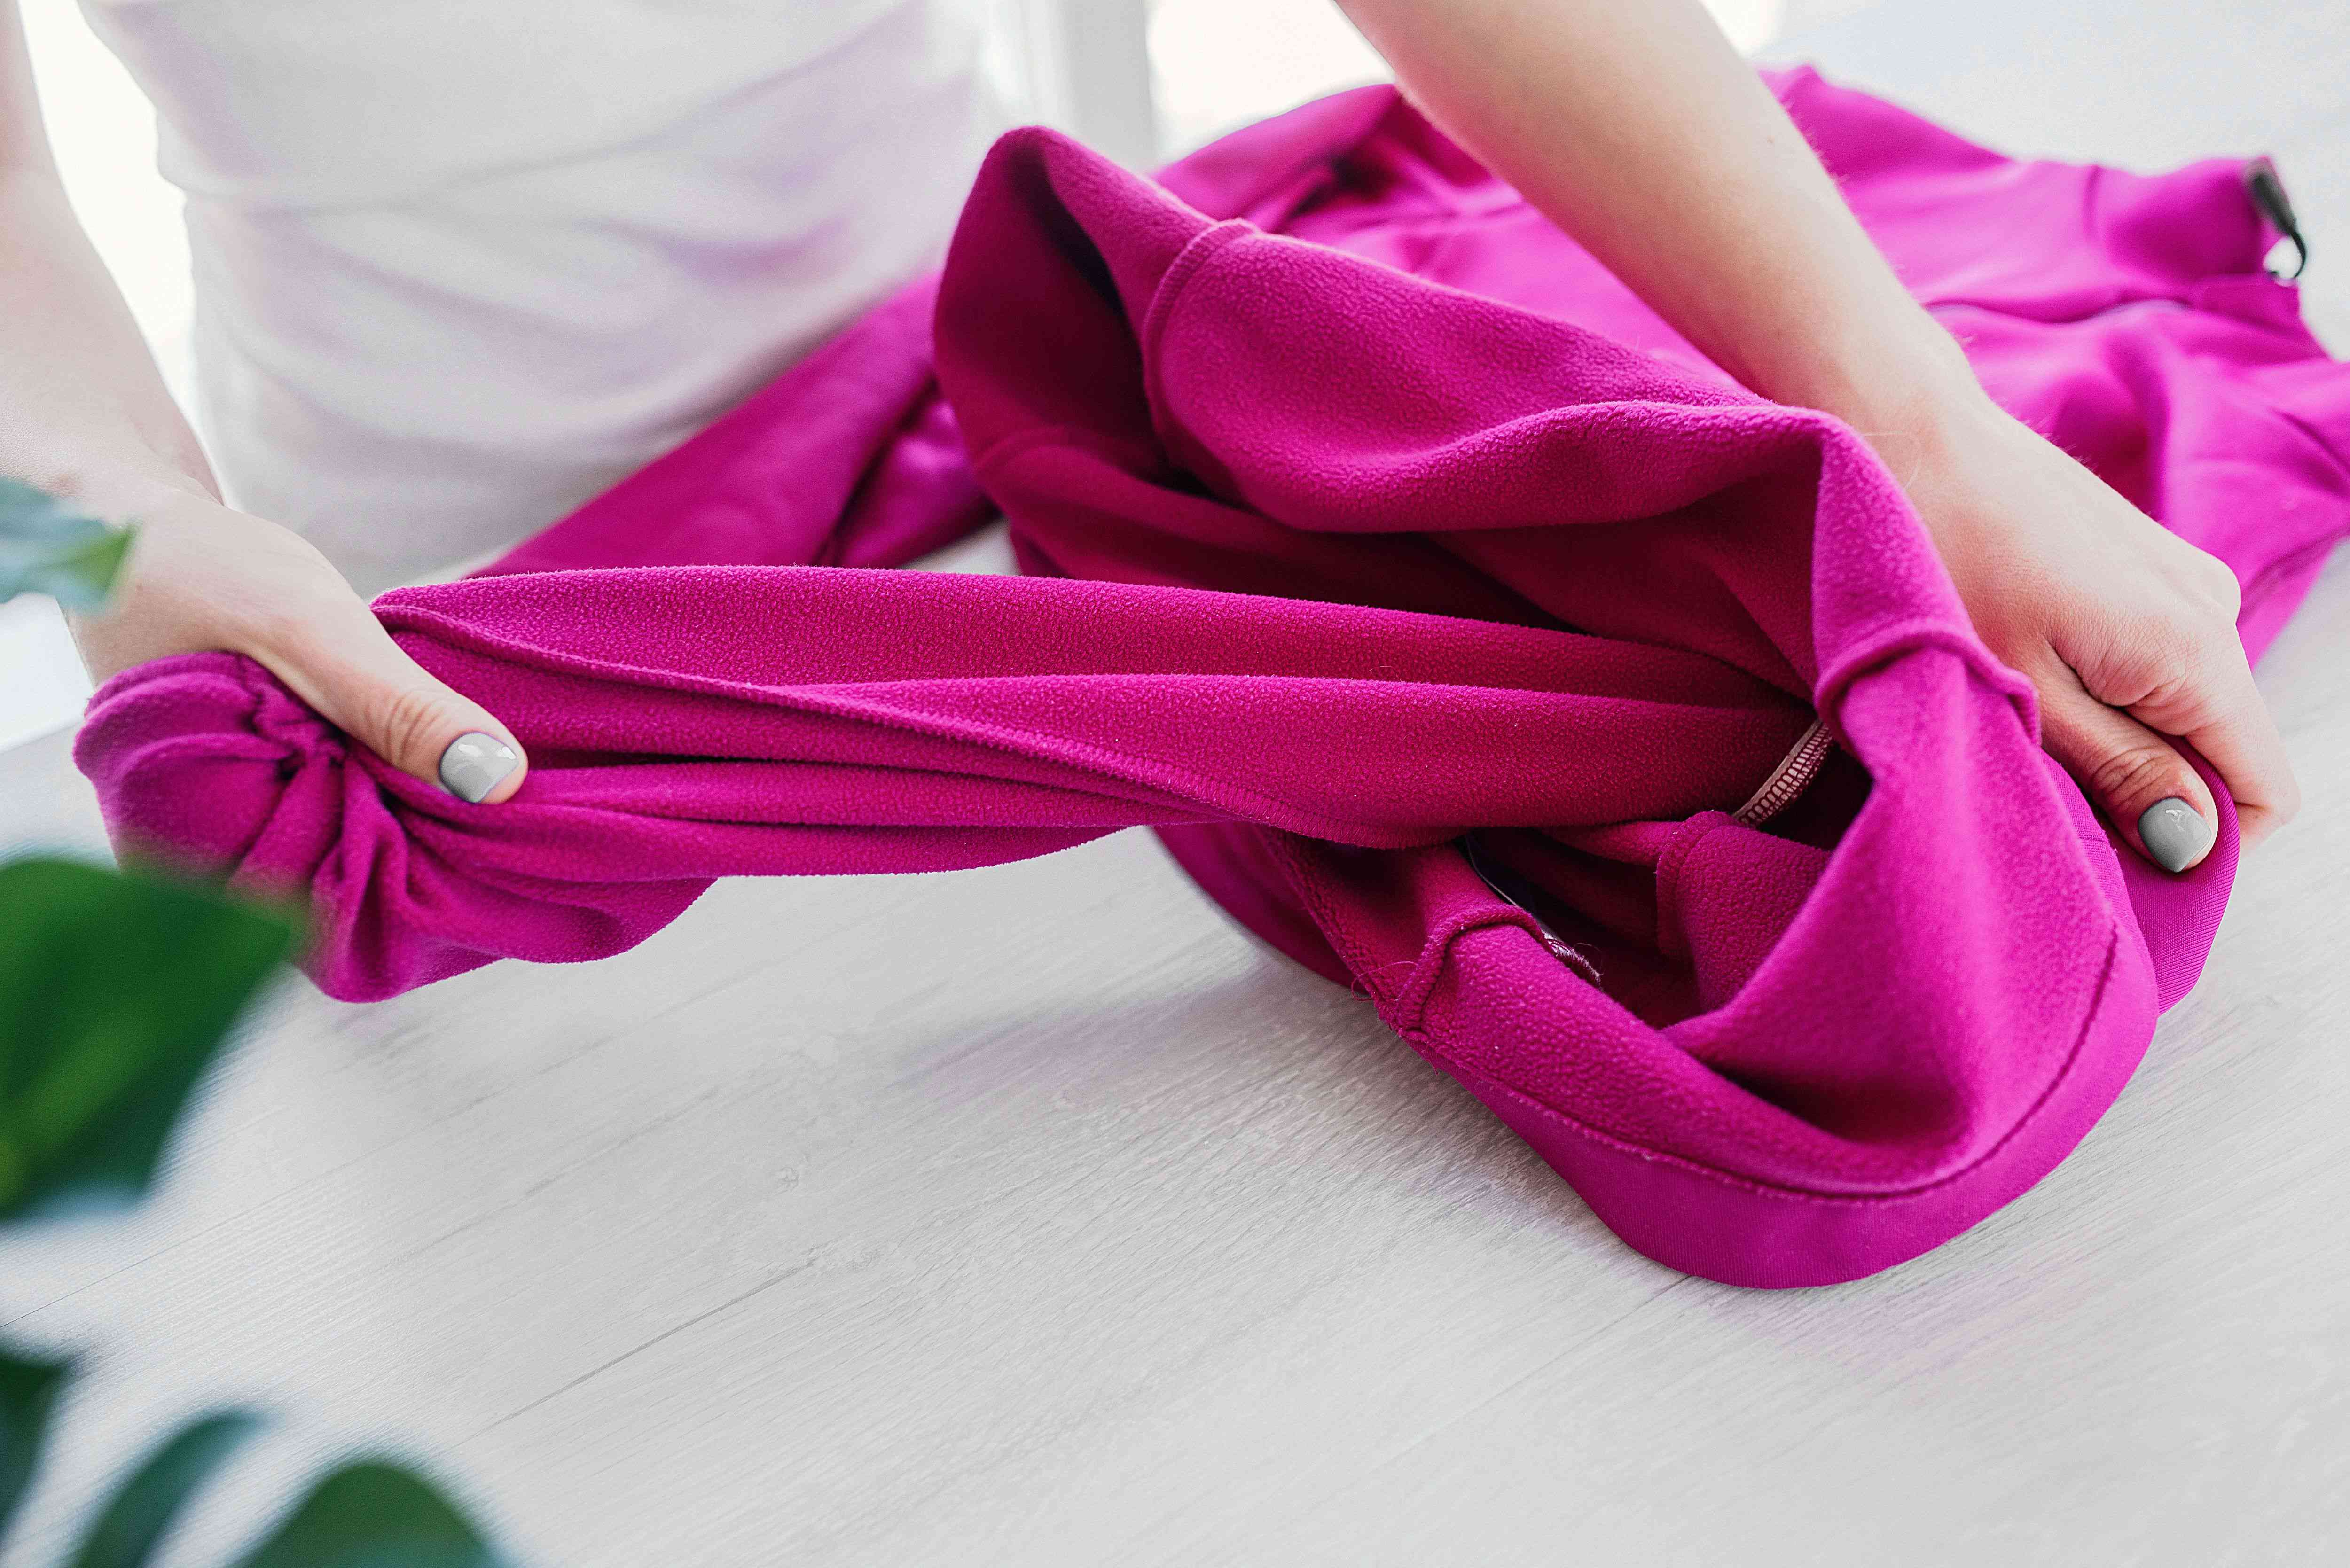 Sorting laundry and turning the fleece garment inside out